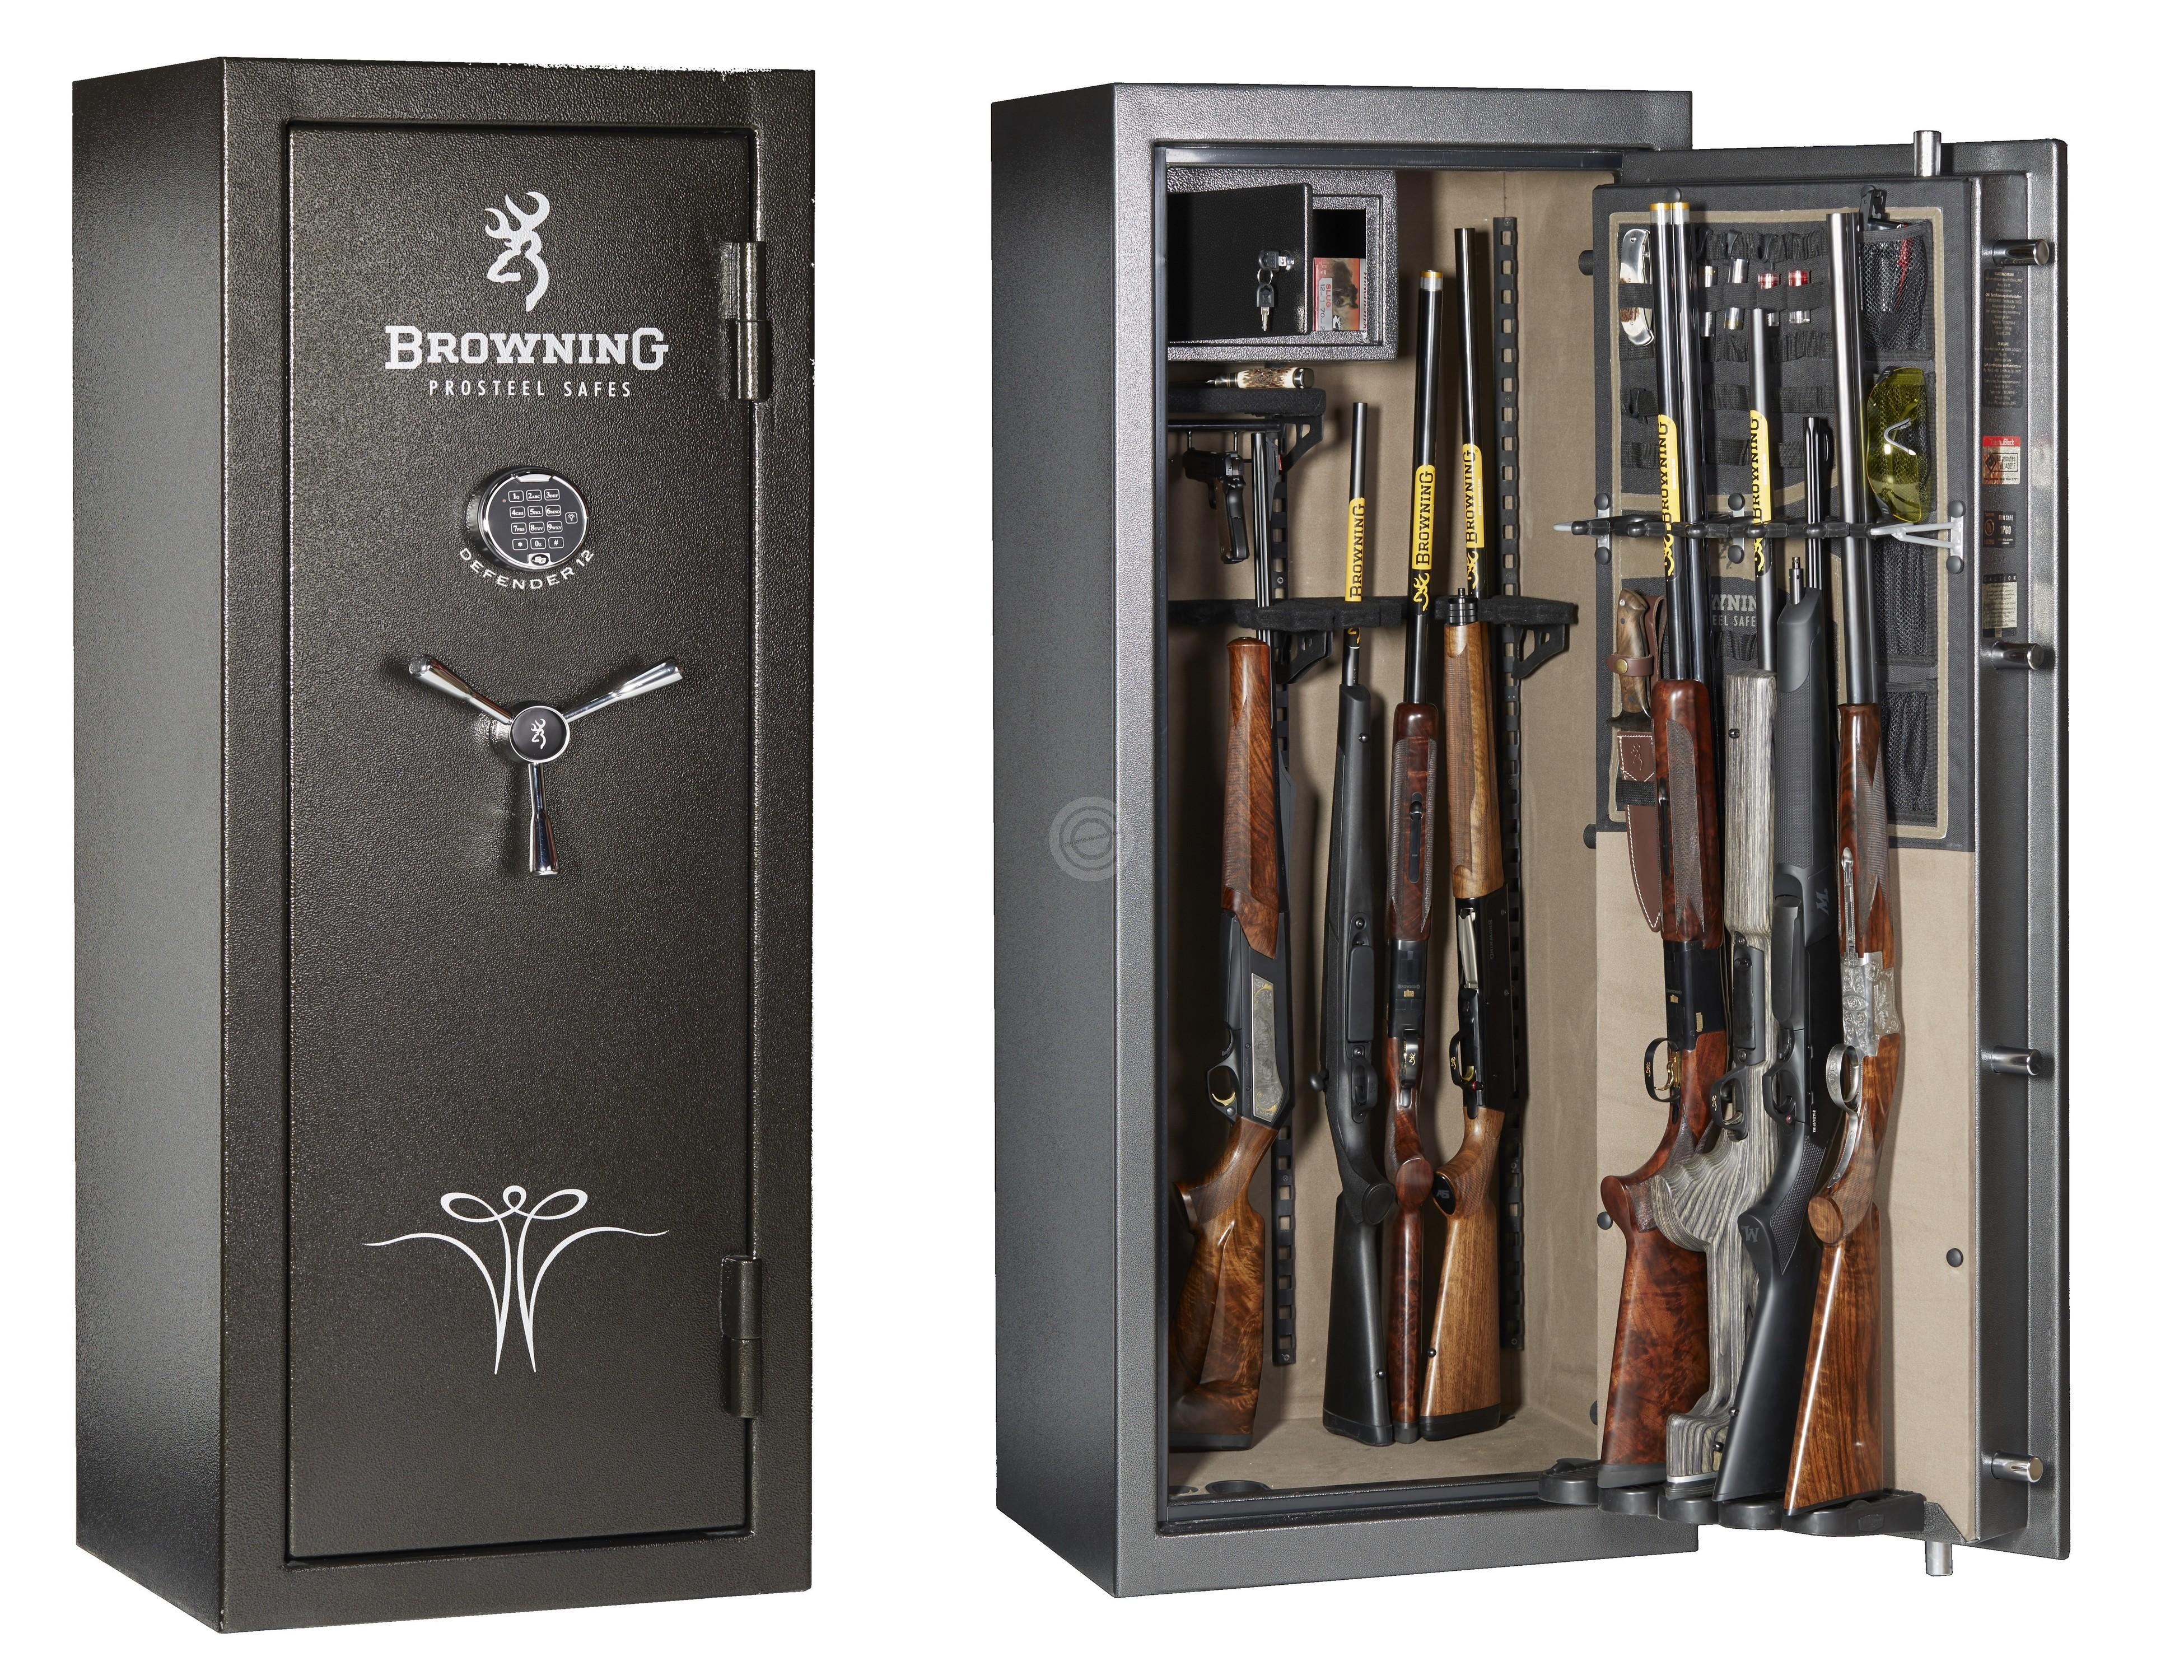 coffre pour armes browning prestige 19 202 kg 19 armes coffres forts armes sur armurerie. Black Bedroom Furniture Sets. Home Design Ideas